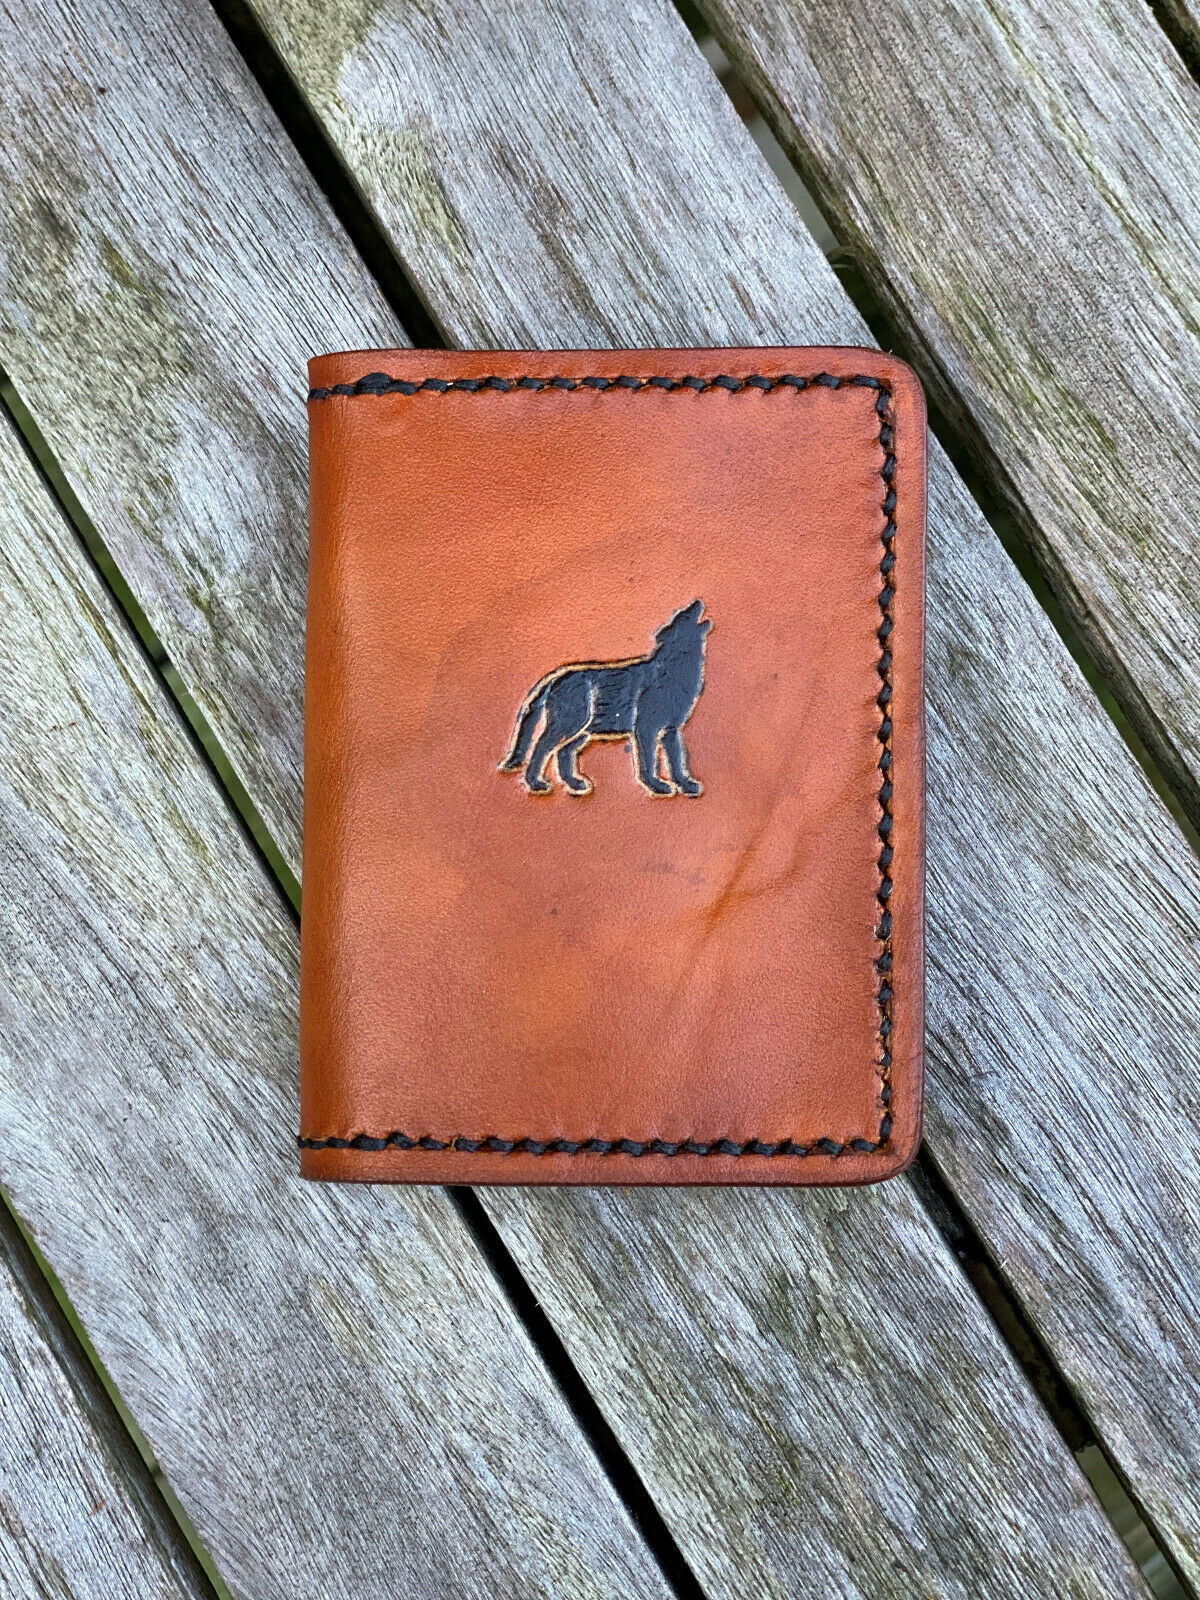 Custom Leather Micro Wallet with Howling Wolf USA Made Gift Stocking Stuffer